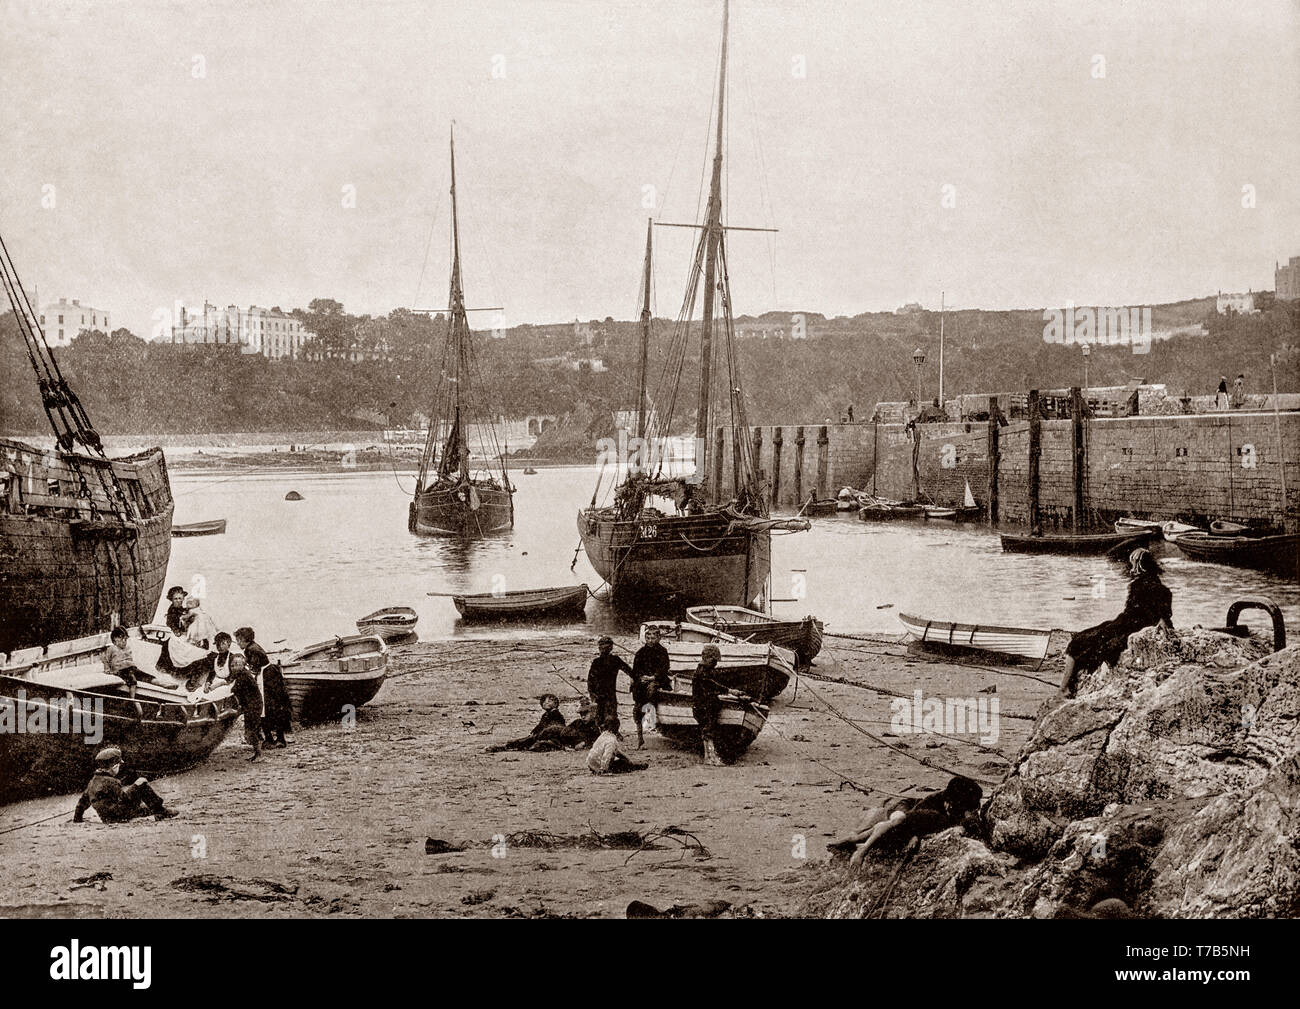 A late 19th Century view of  the harbour at Tenby, a walled seaside town in Pembrokeshire, Wales, on the western side of Carmarthen Bay. The town's fortunes rose when a local resident, merchant banker and politician, Sir William Paxton invested heavily in the area. With the growth in saltwater sea-bathing for health purposes, Paxton went on to create a 'fashionable bathing establishment suitable for the highest society. - Stock Image